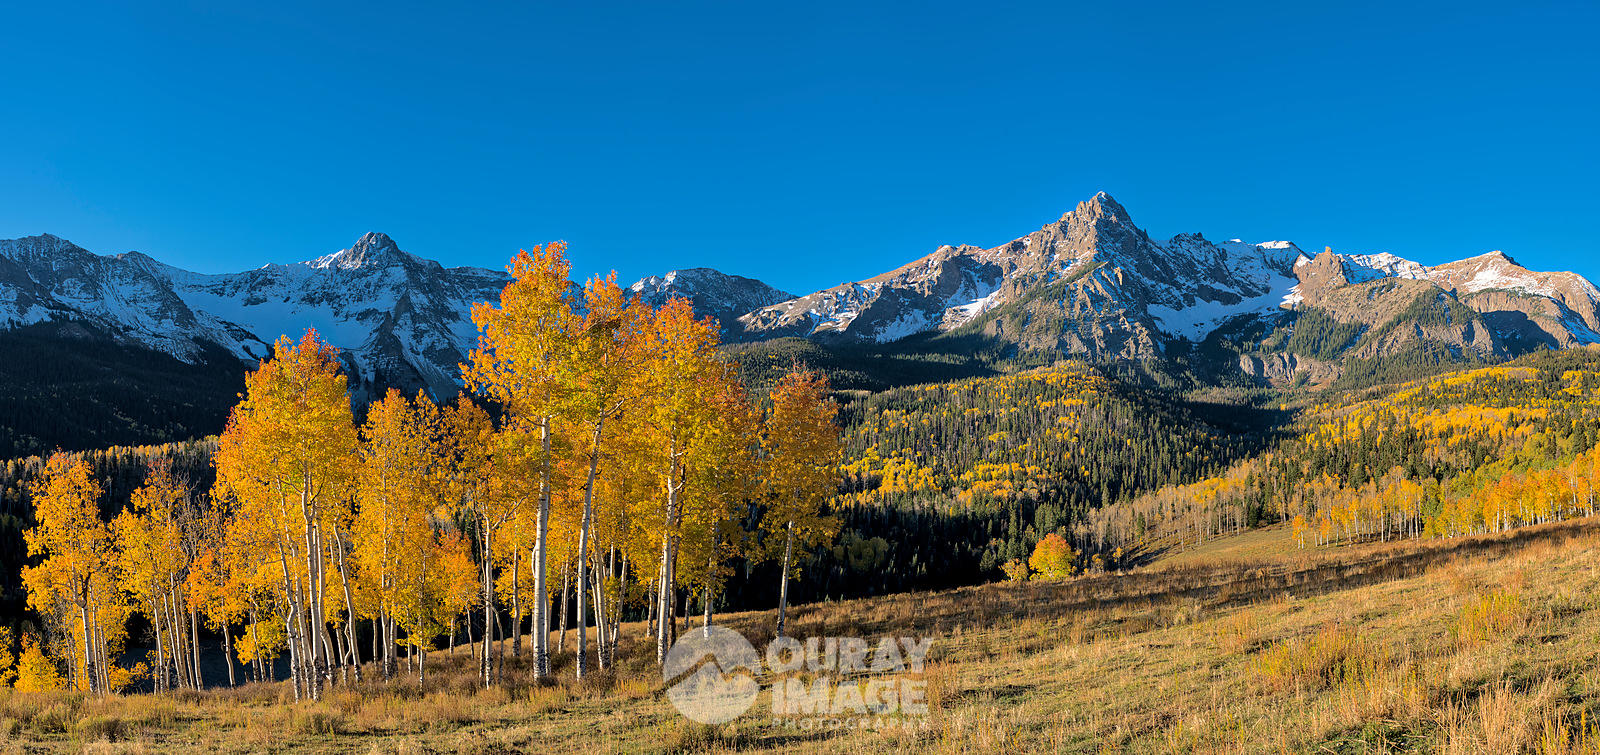 Mears and S9 Peak in Fall Morning - Large print option